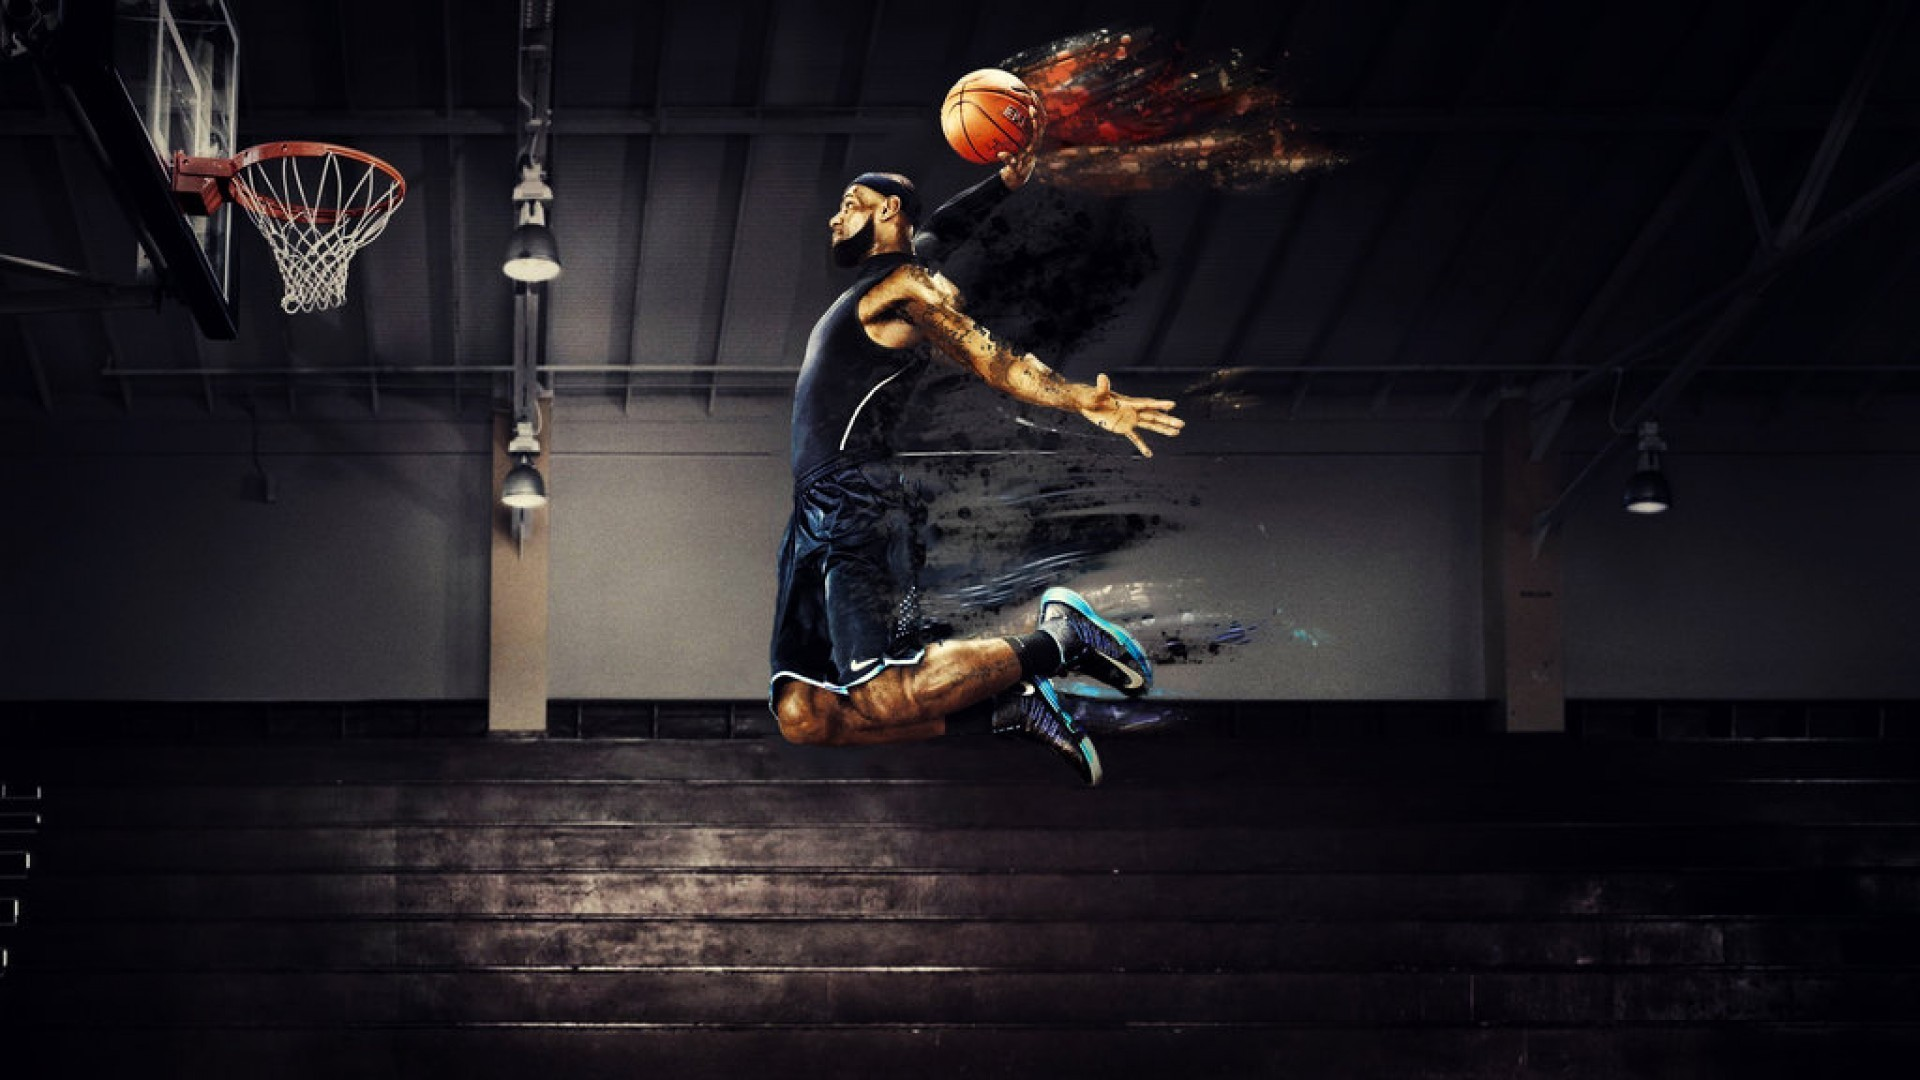 Lebron James Wallpapers Dunk 77 Background Pictures